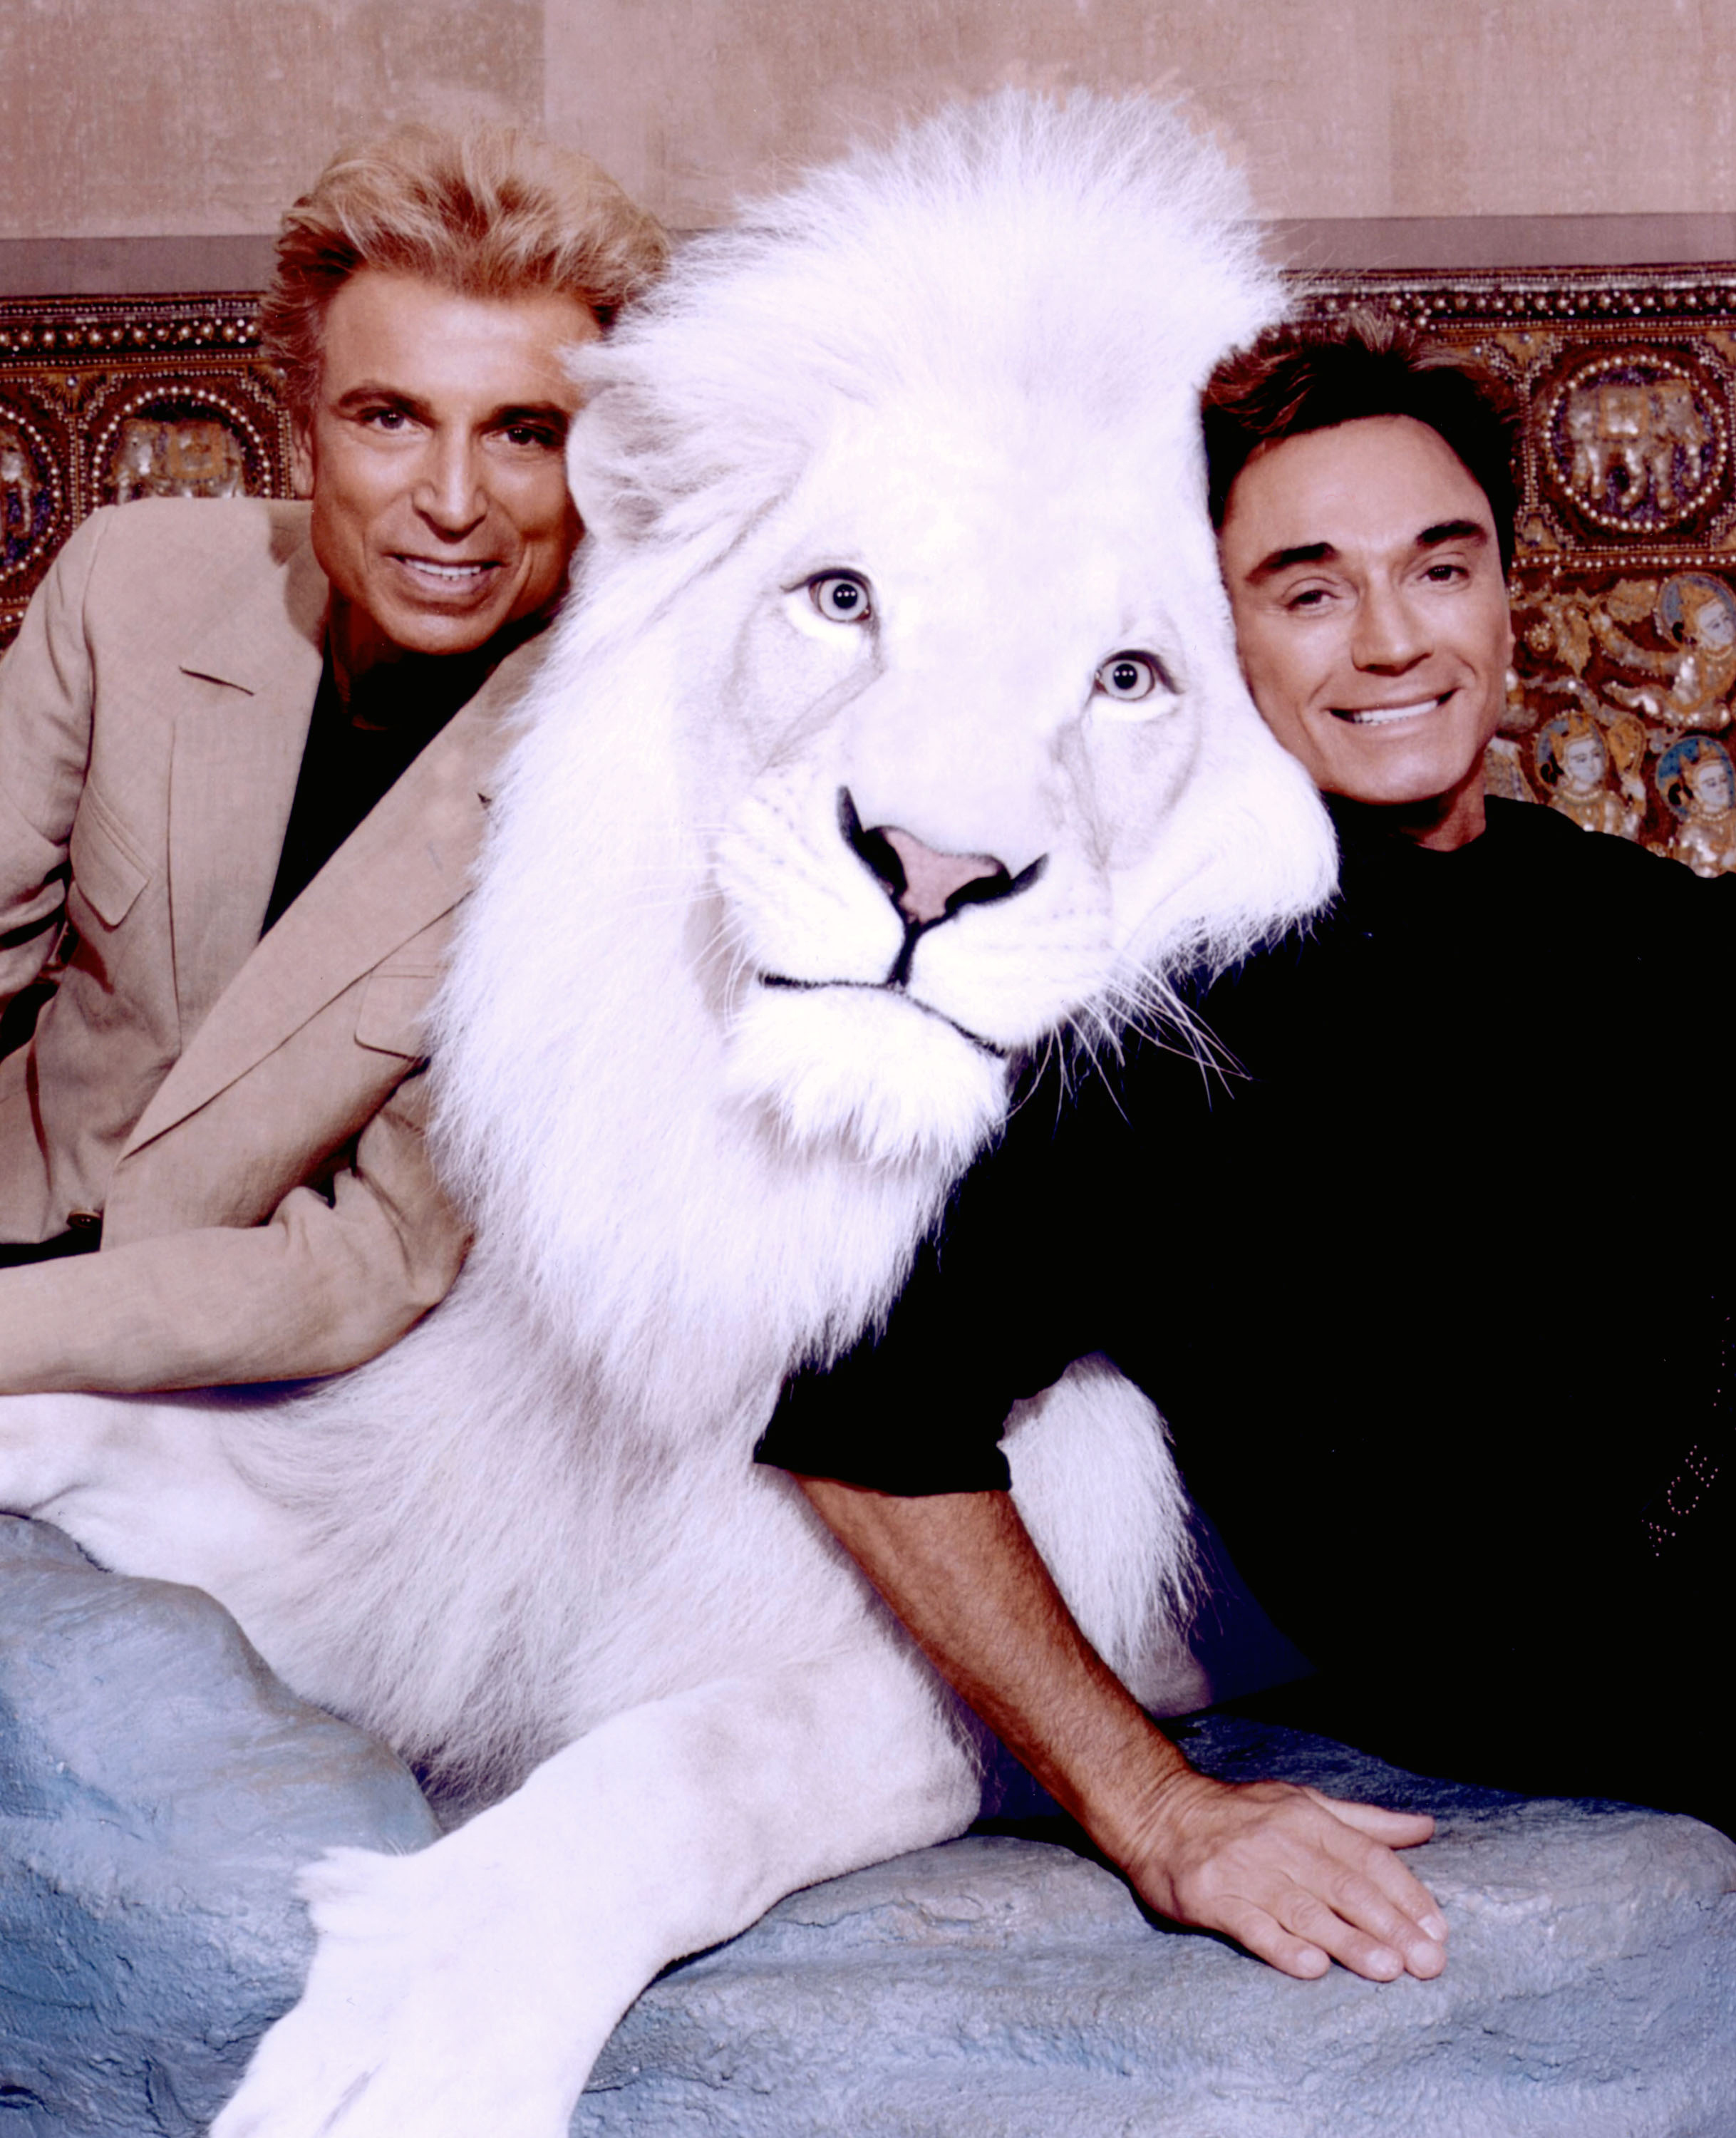 World-renowned illusionists and conservationists Siegfried & Roy pose with Pride, the Magical White Lion in this undated photo.